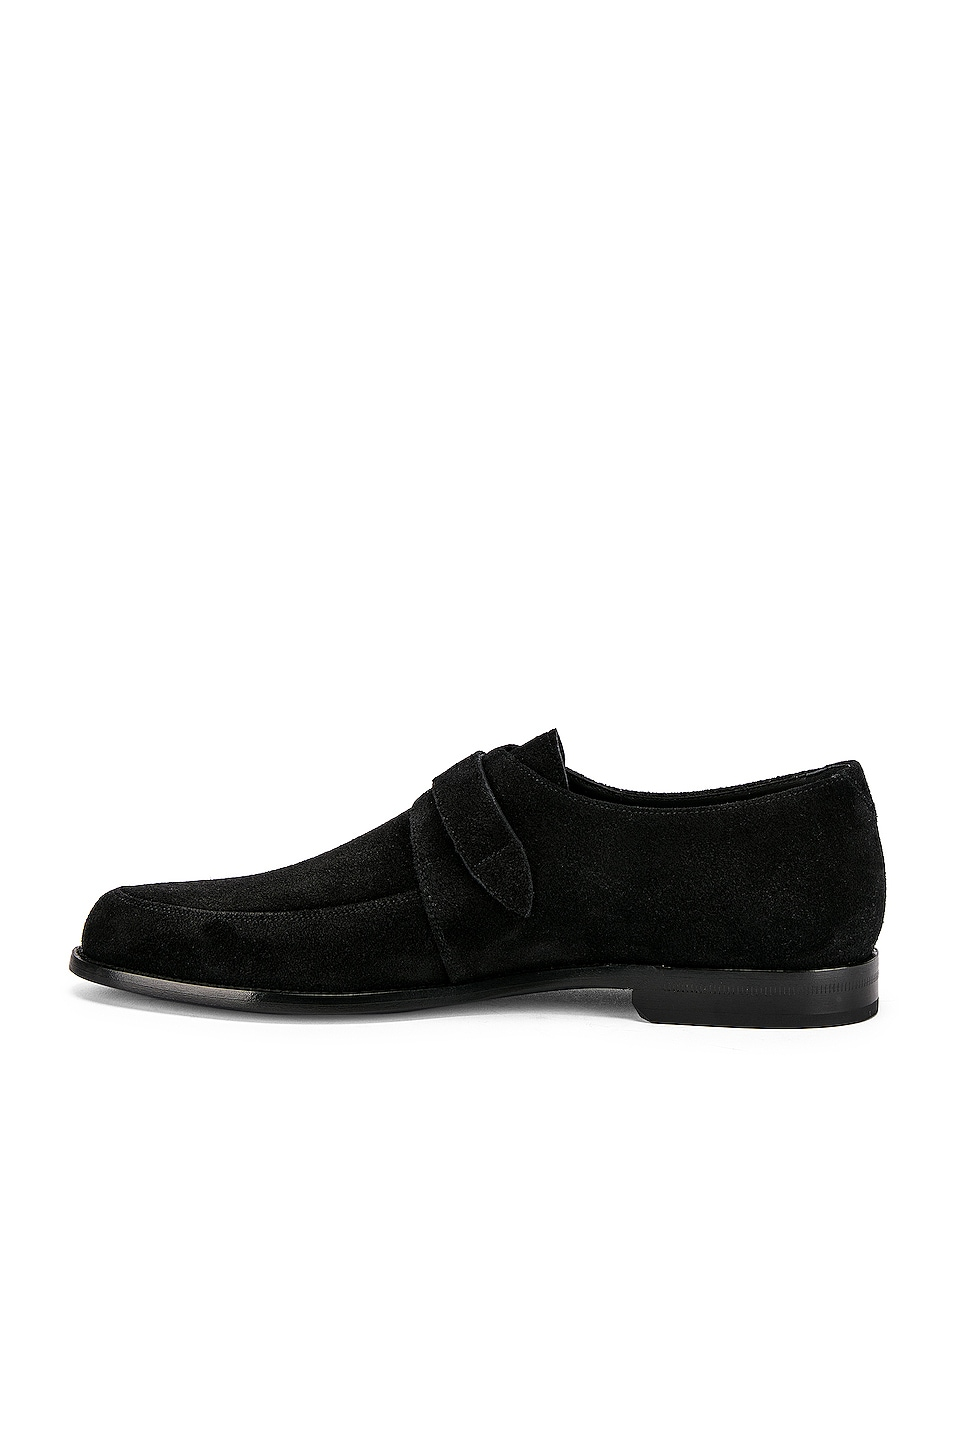 Image 5 of Saint Laurent Charles Dress Shoes in Black